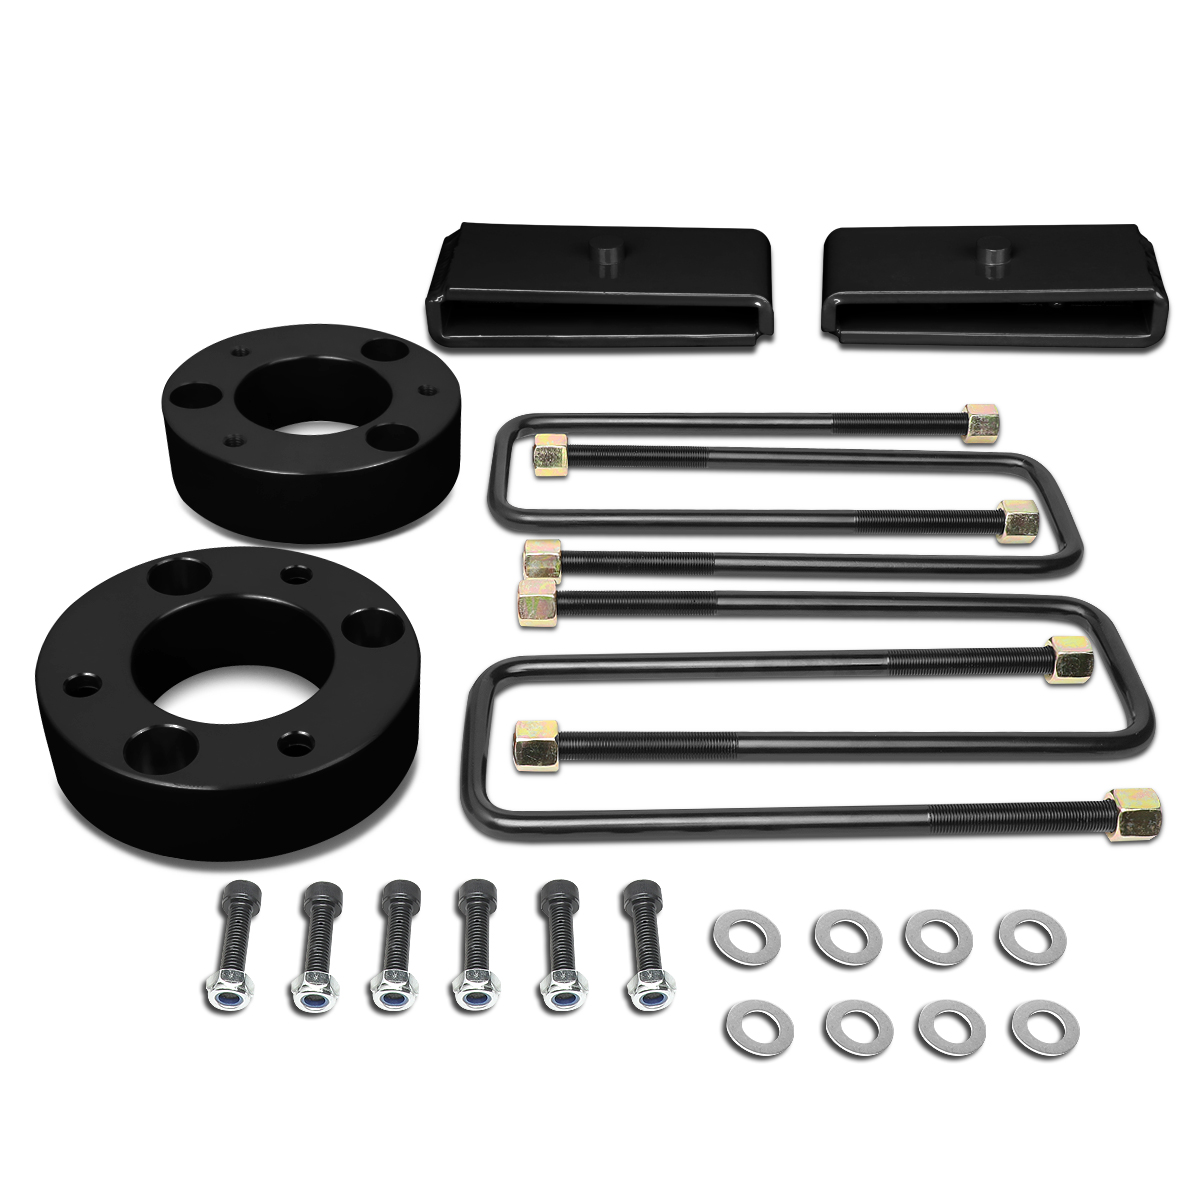 07 17 Chevy Silverado Gmc Sierra 1500 Black 3 Front Spacer 1 White Lifted Rear Block Leveling Lift Kit